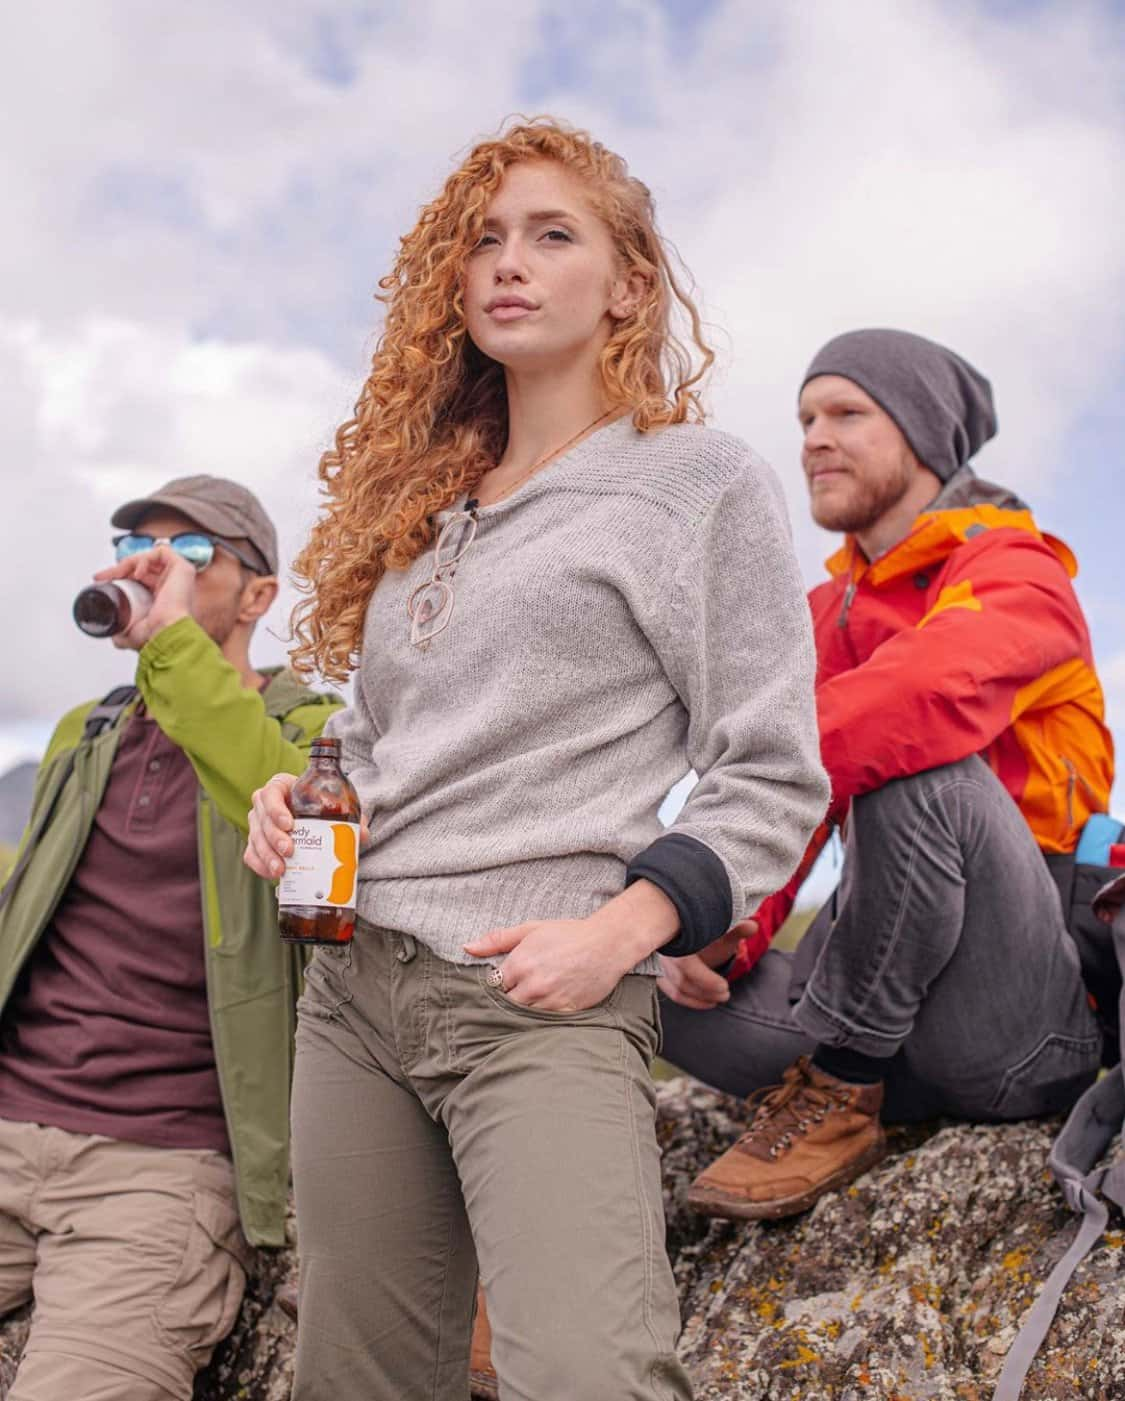 long red curly hair female wearing a gray hooded sweater and army gree pants drinking a kambucha with her male friends in redand ornge rain jacket and green zip up jacket over a burgundy henley